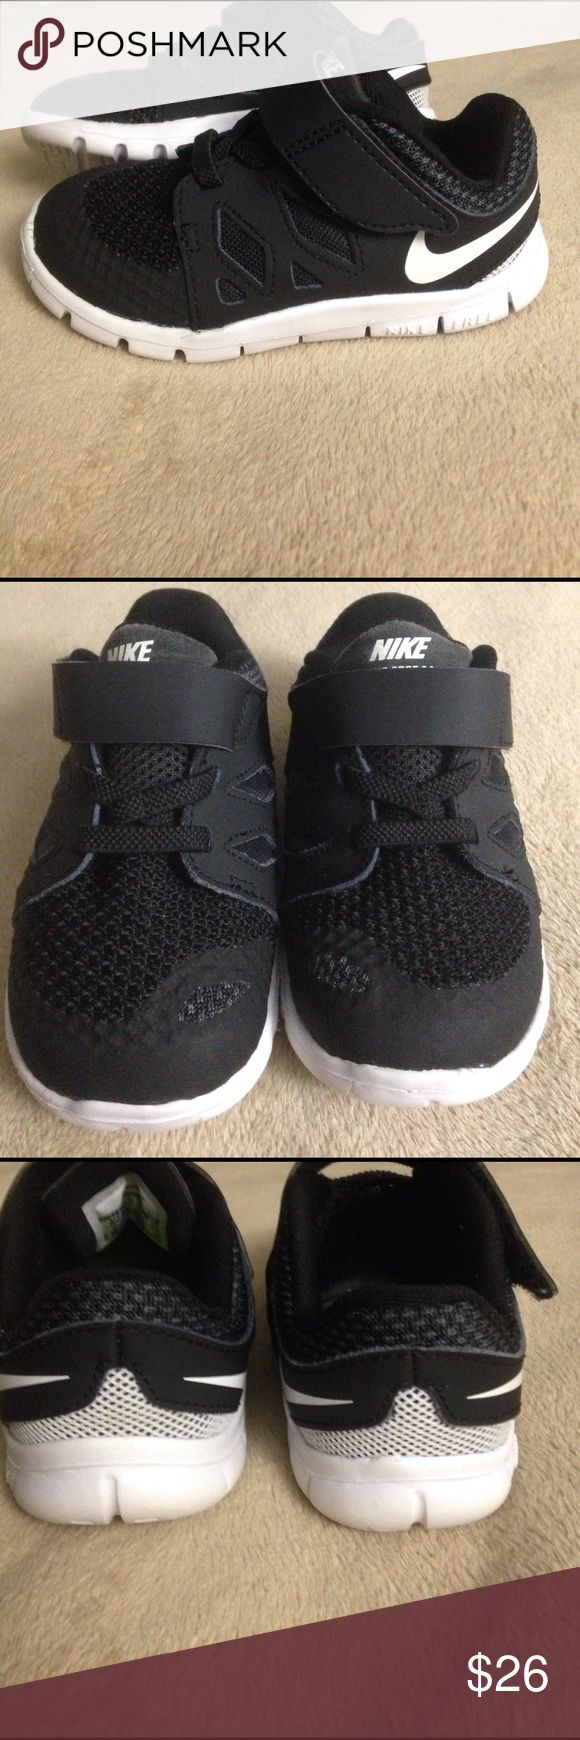 Toddler Nike free 5.0 Gently worn black and white Nike free 5.0! Still in great condition. Velcro with fake laces. Small scuff on the left side of the right shoe (pictured). Tongue has slight wear. Size 6c - Nike Shoes Sneakers